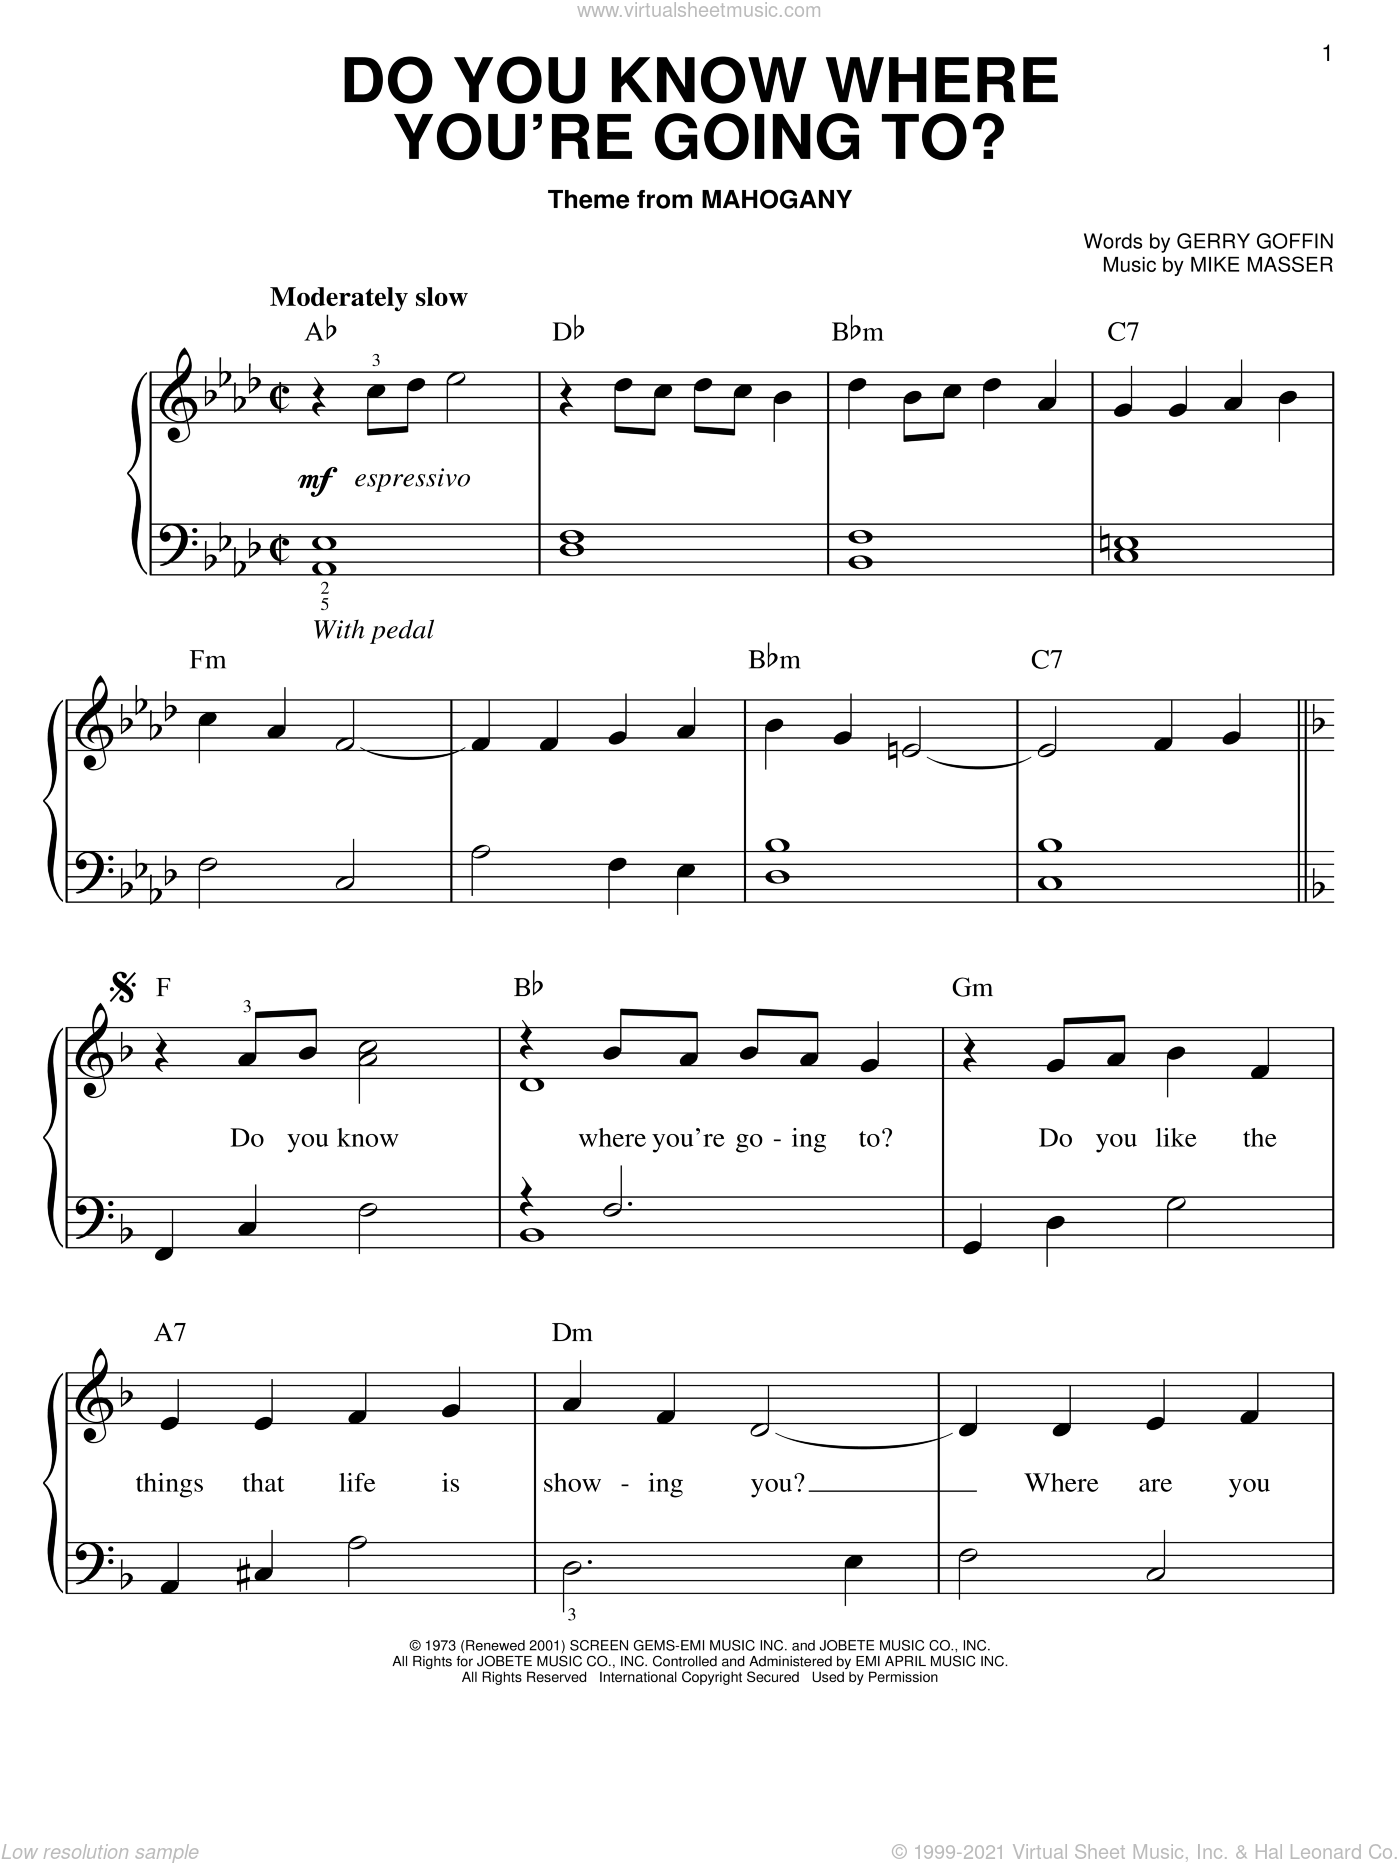 Do You Know Where You're Going To? sheet music for piano solo (chords) by Michael Masser